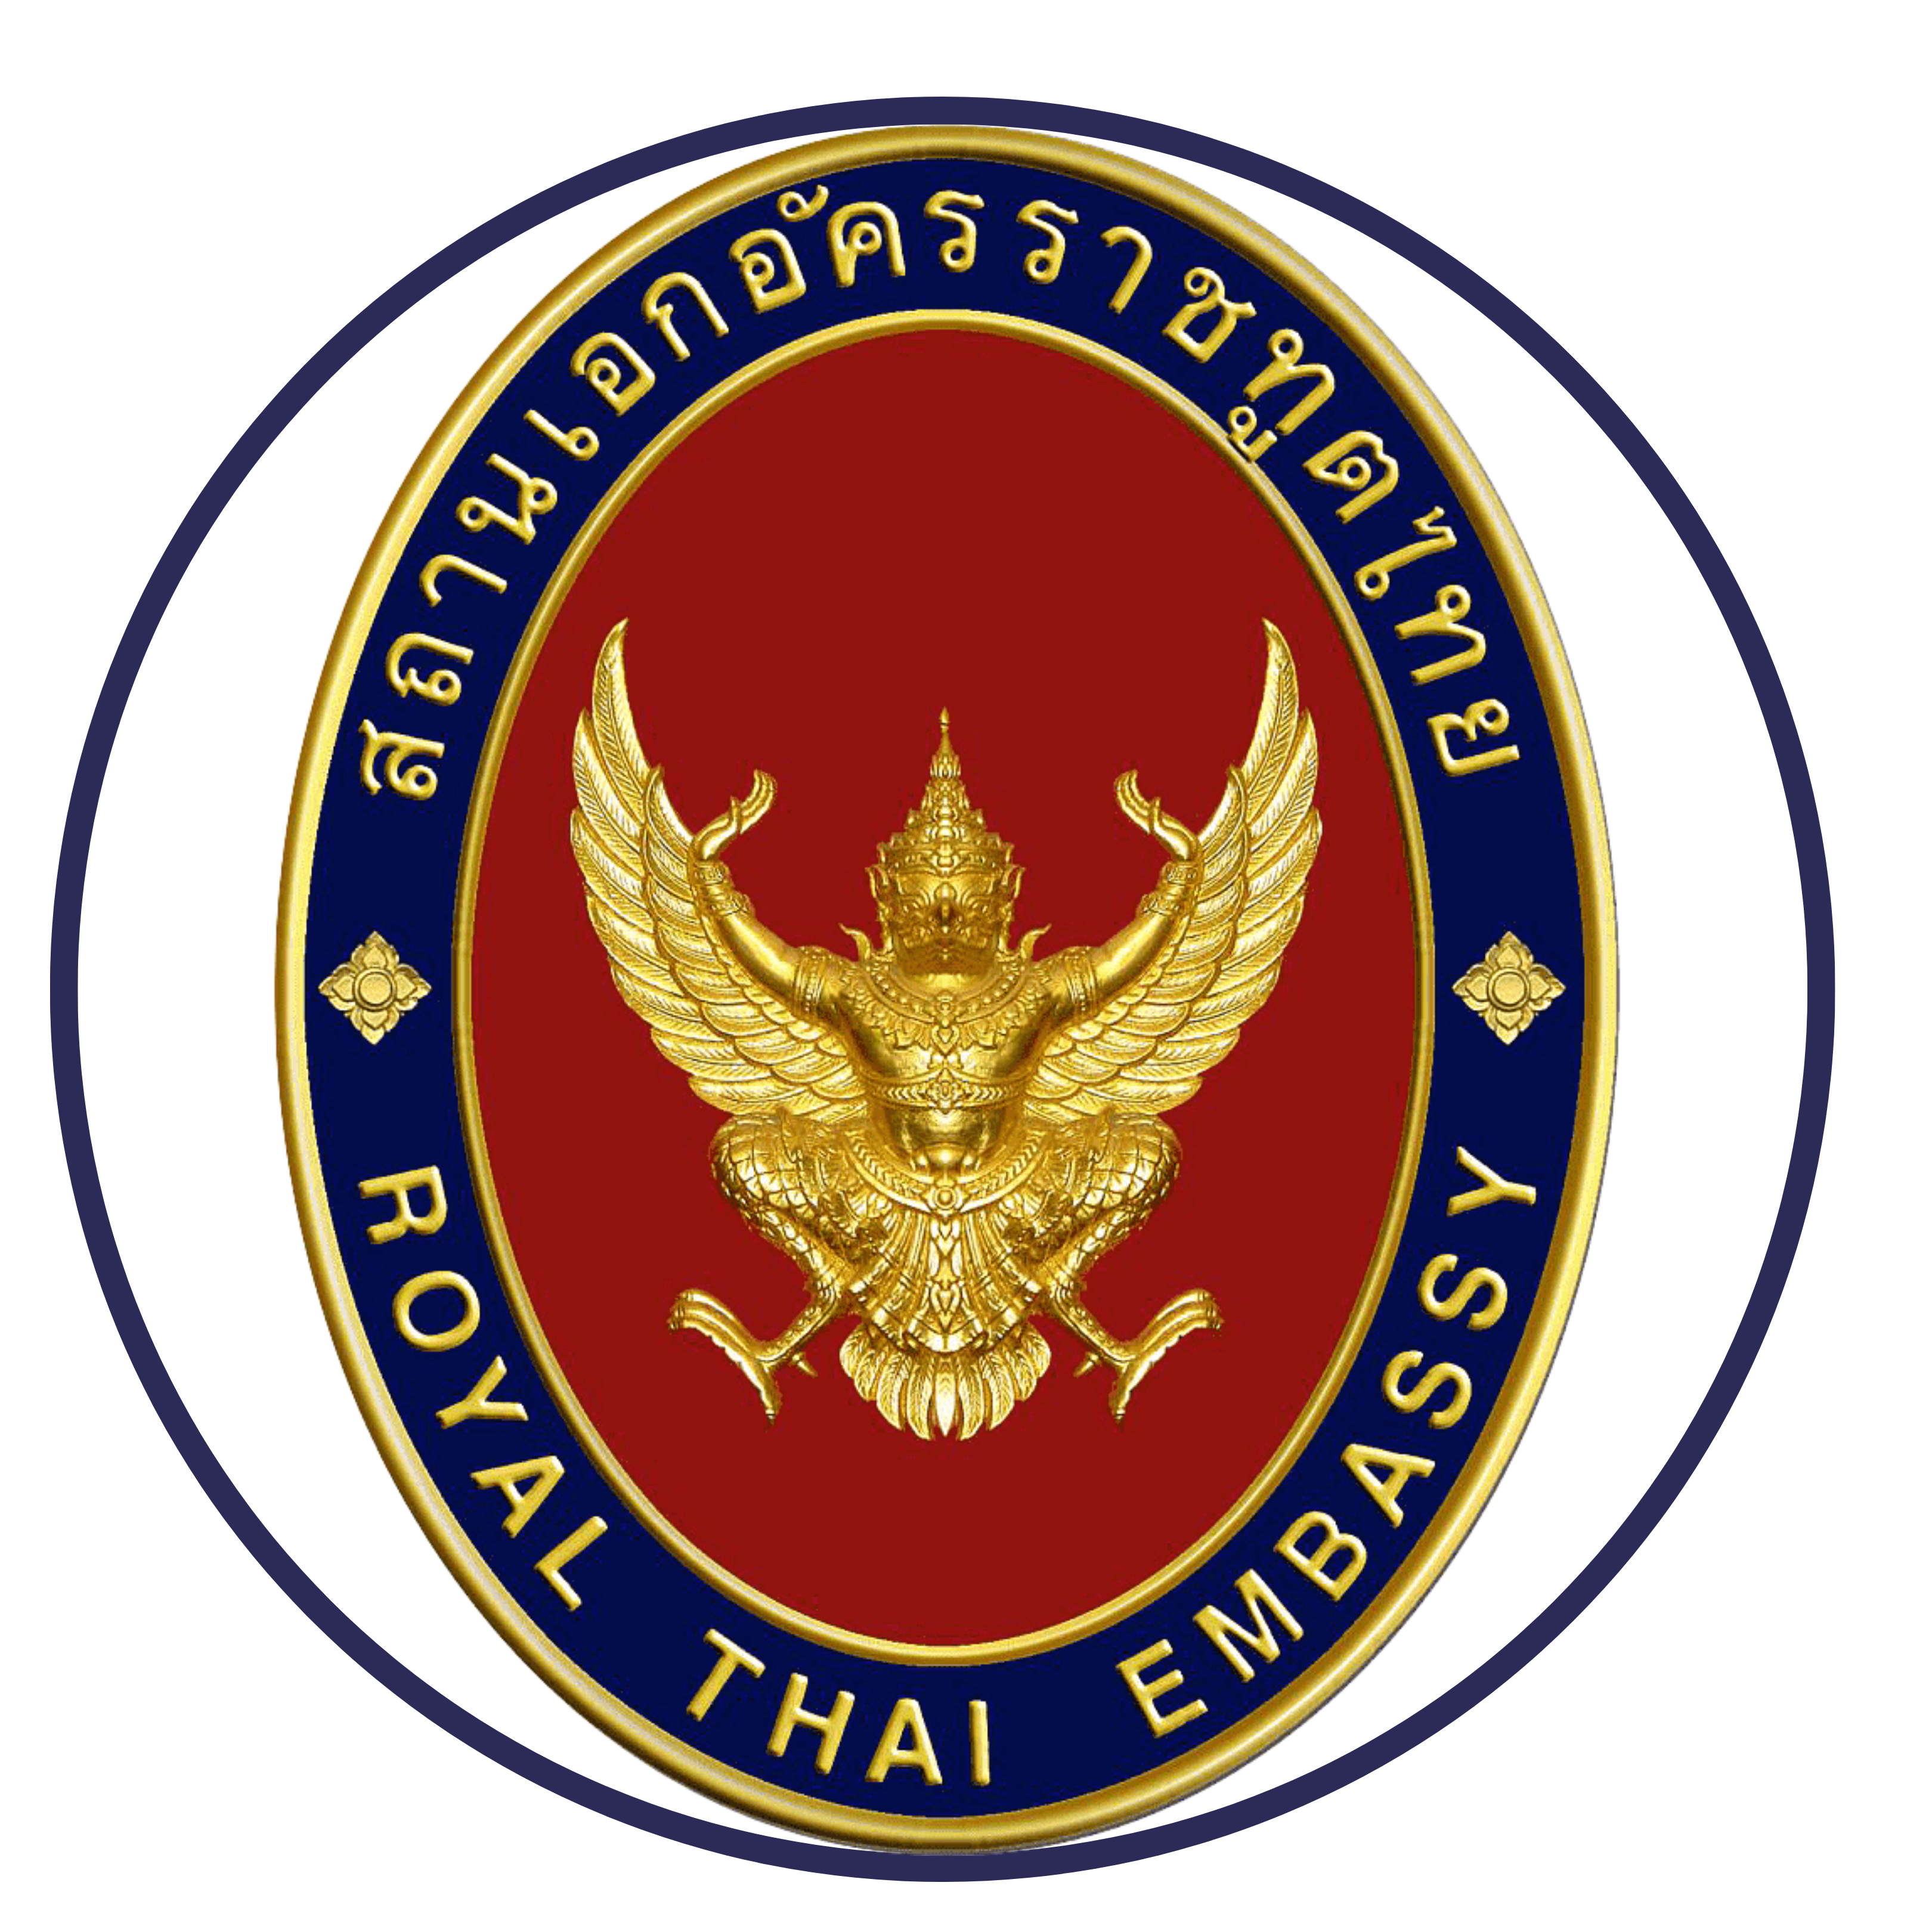 ROYAL EMBASSY OF THE KINGDOM OF THAILAND